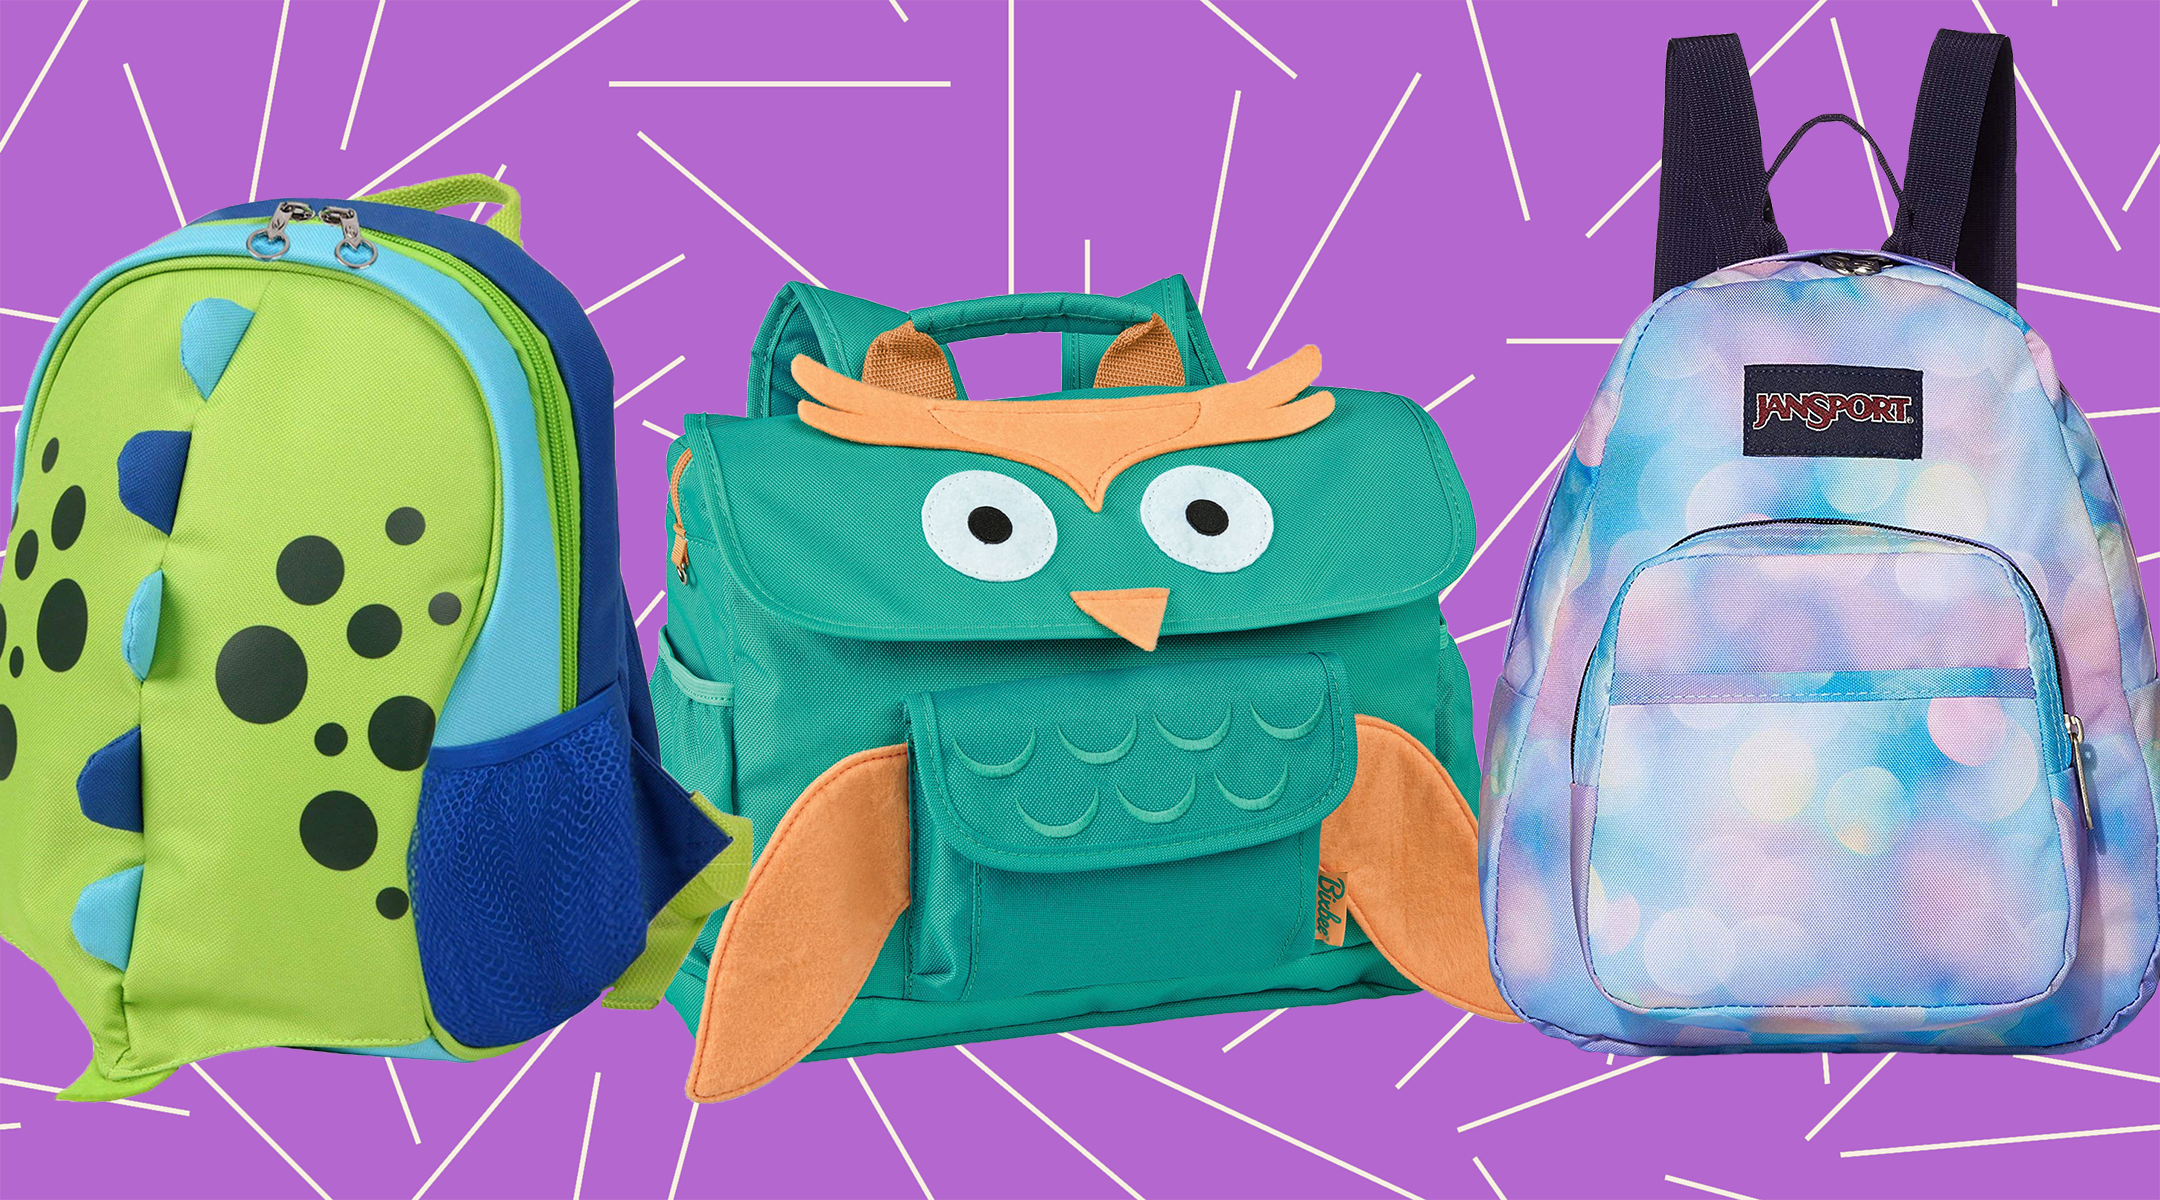 collage of toddler backpacks against geometric background